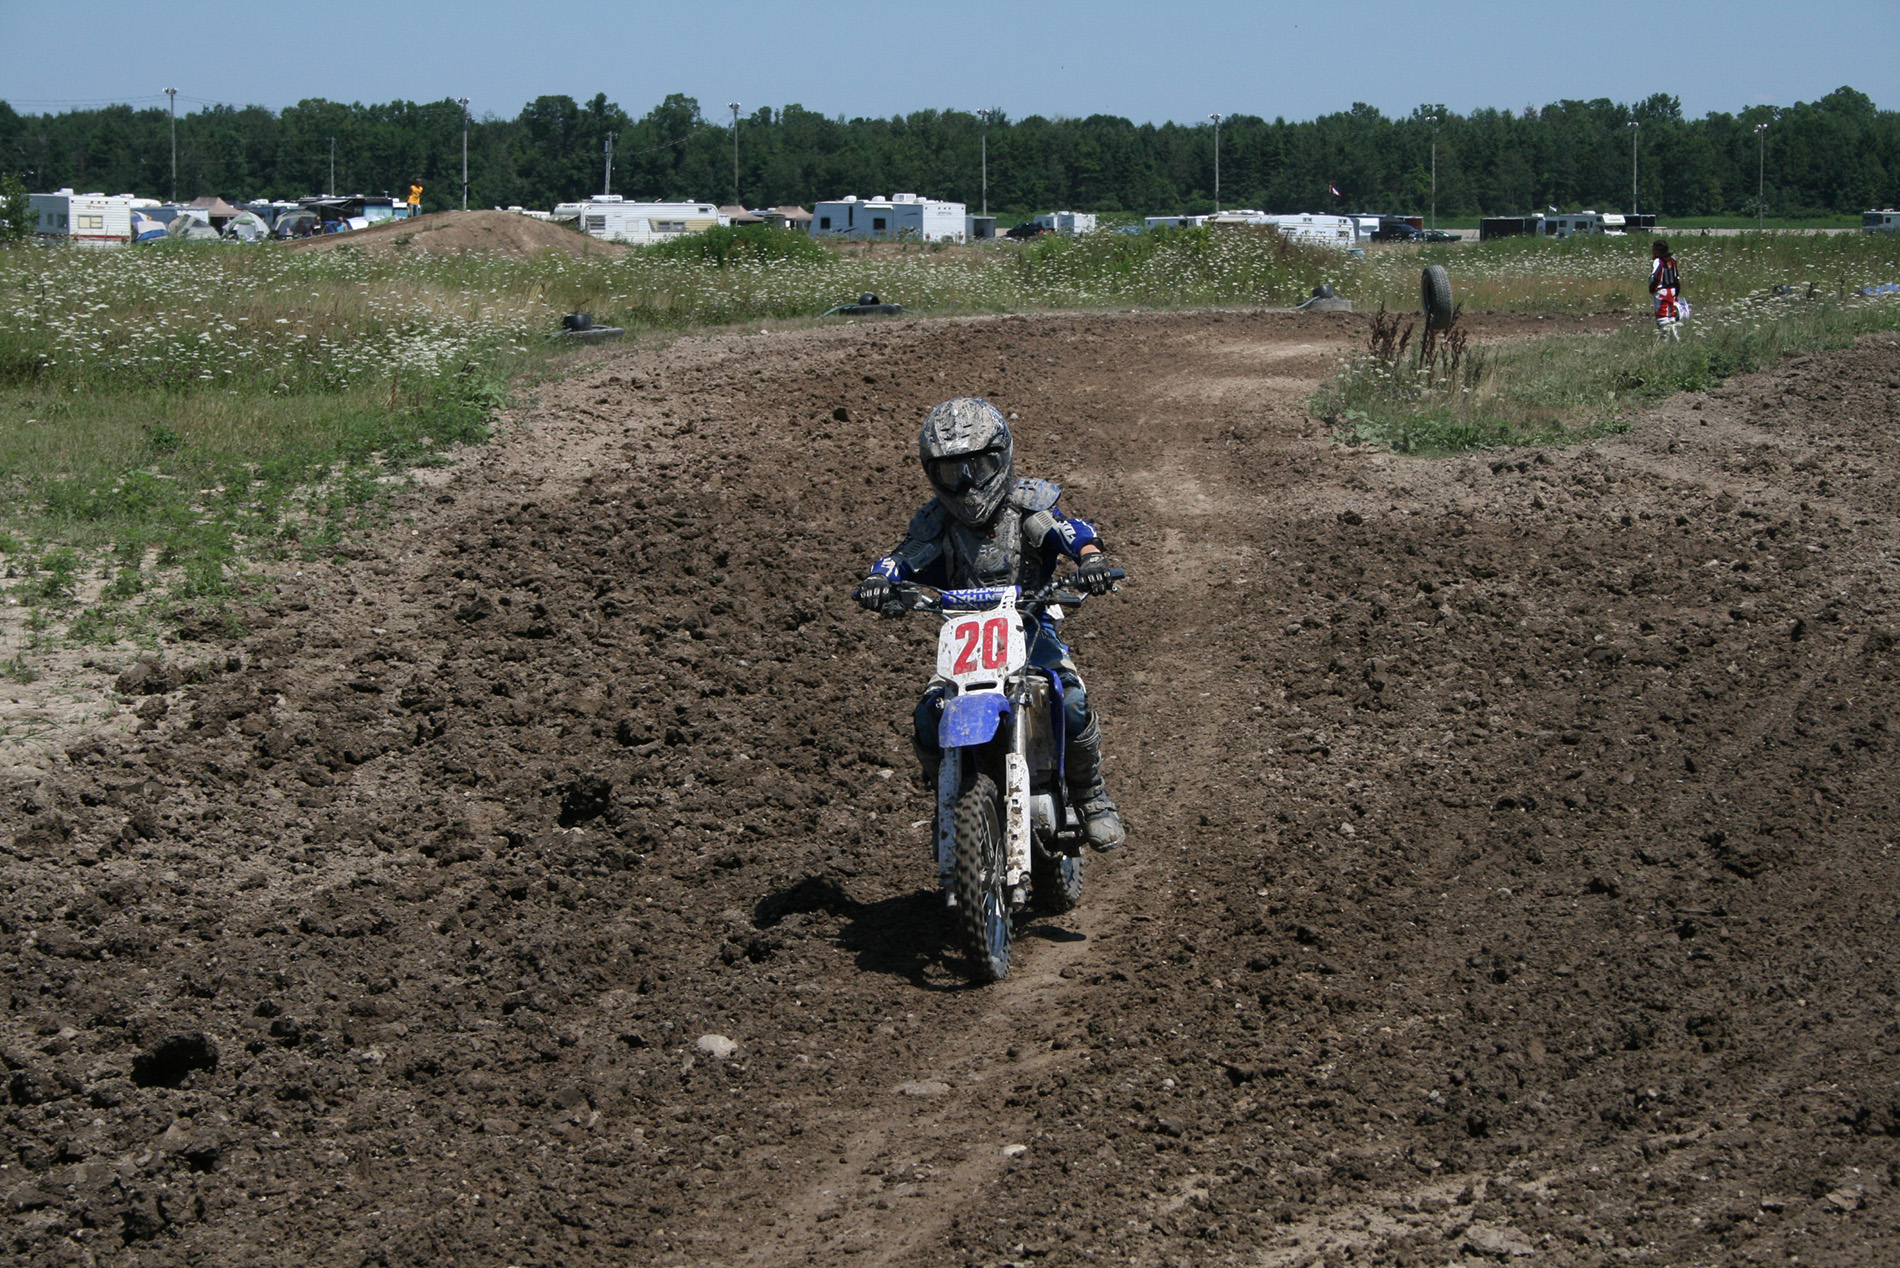 CMX Motocross July 30, 2011